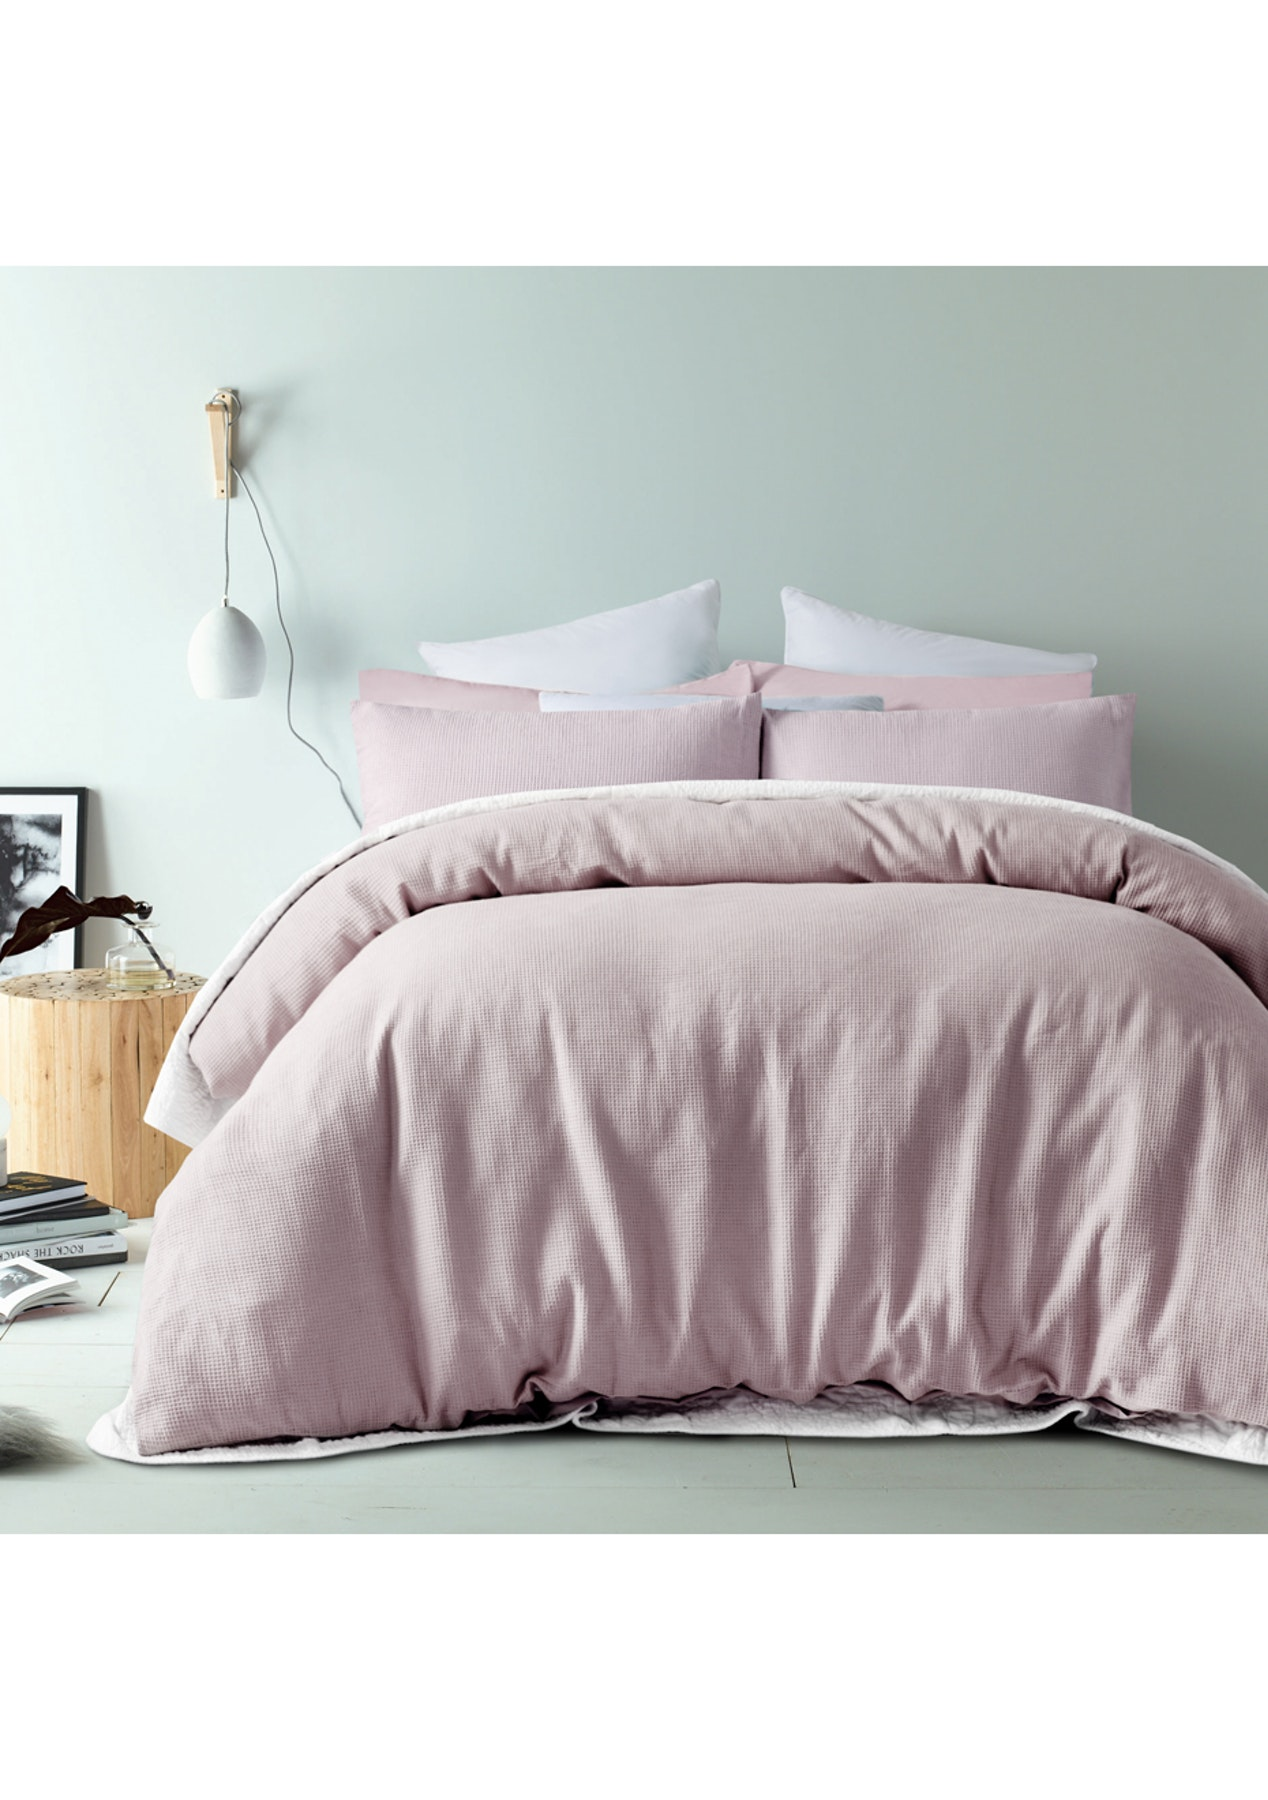 duvet blush pin sweet cover home pearl pinterest set